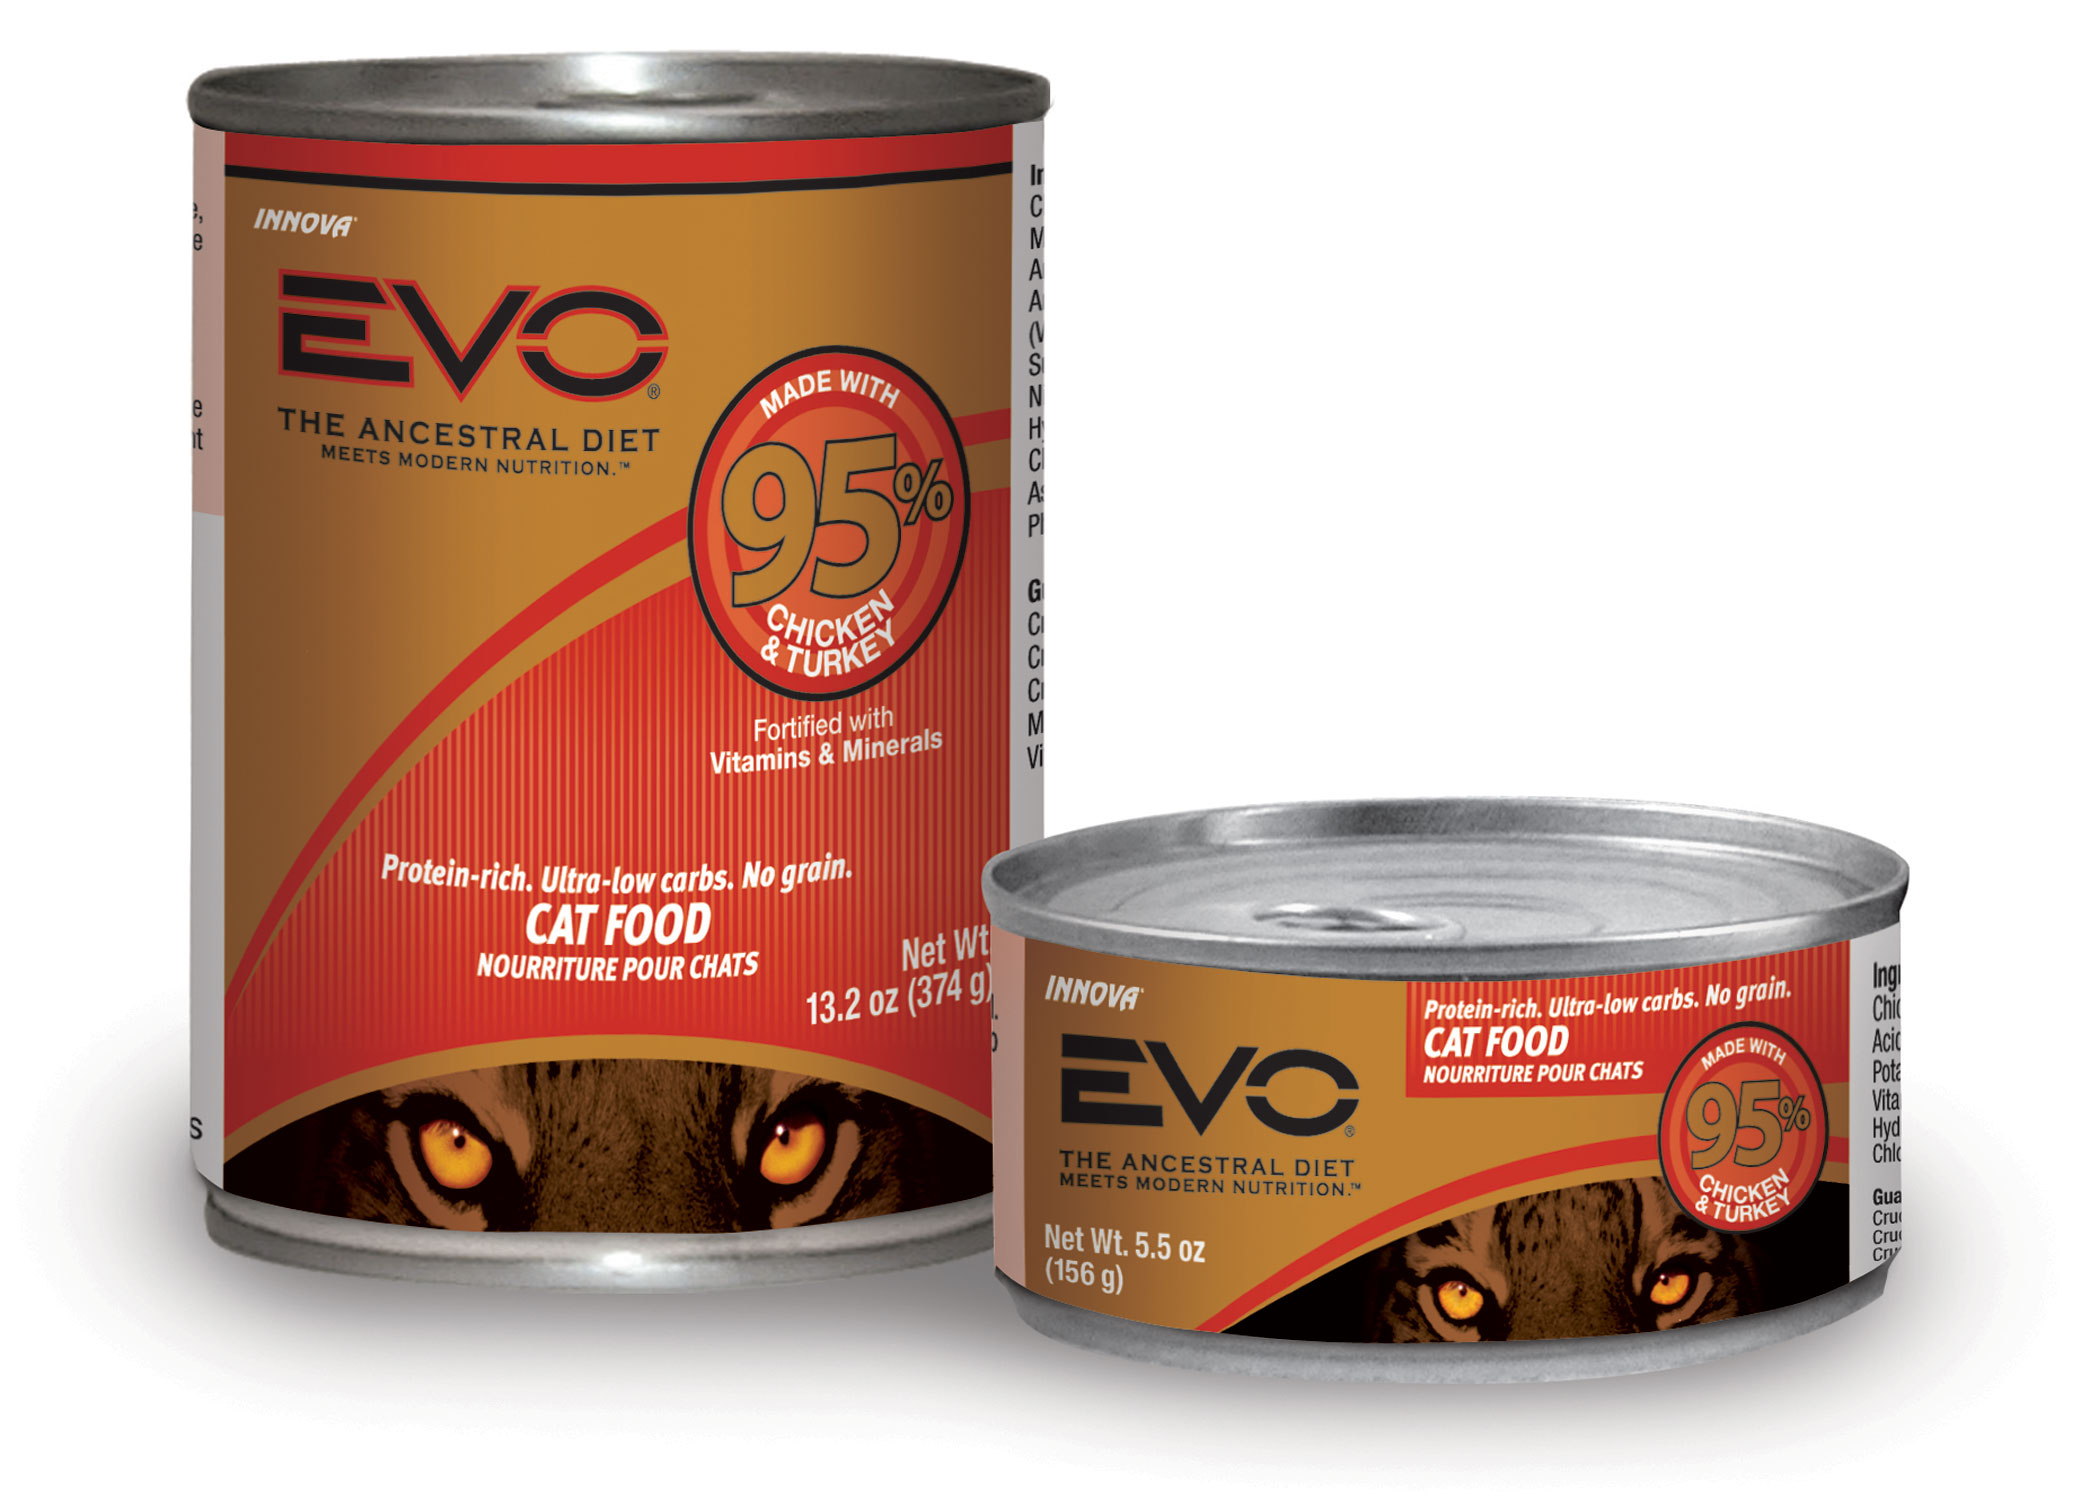 Evo Canned Cat Food Ingredients